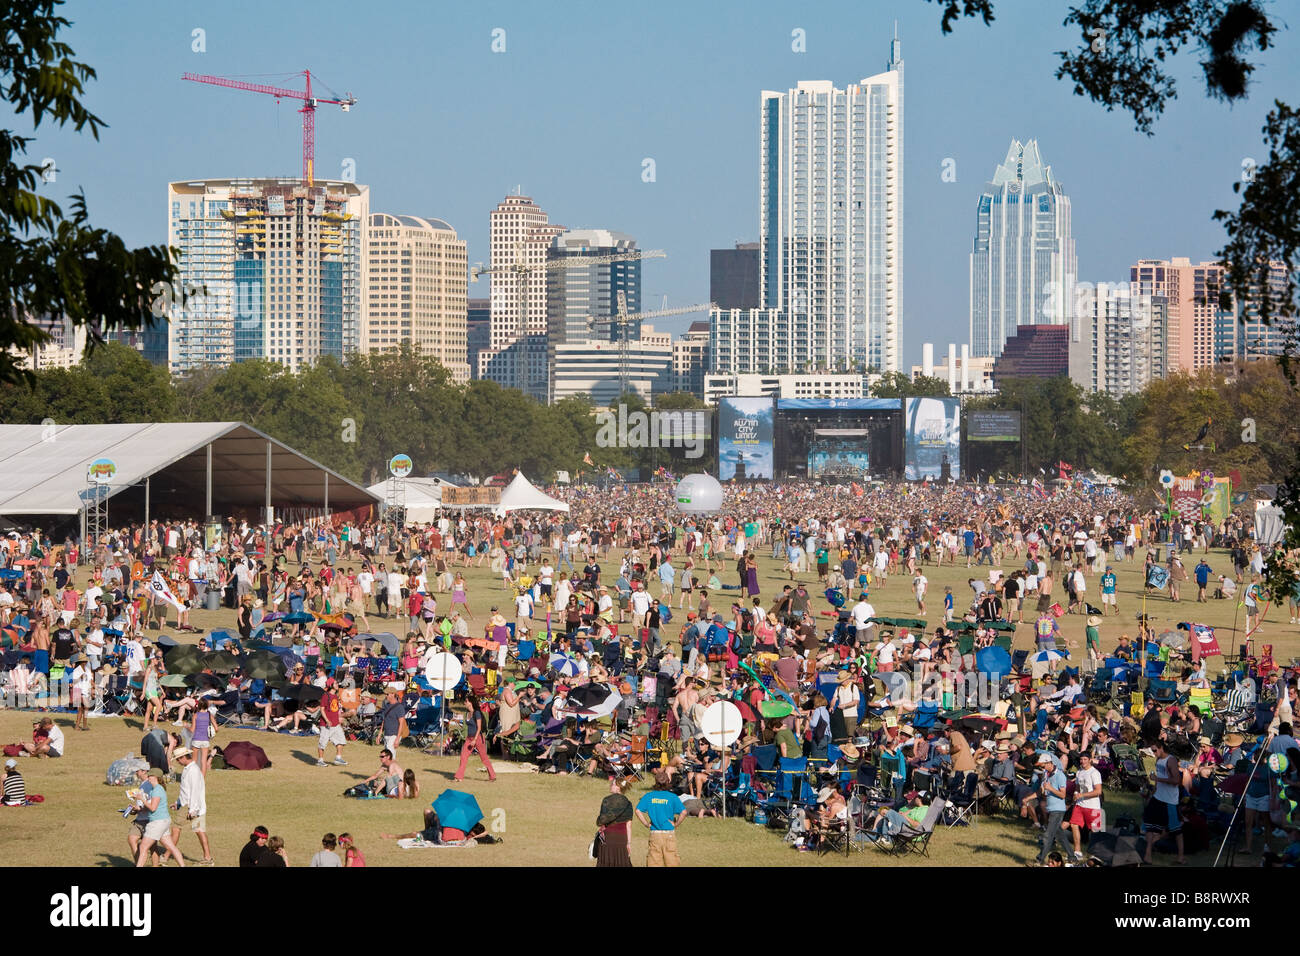 Austin, Texas - Thousands of music fans congregate on the lawn of Zilker Park during the Austin City Limits Music - Stock Image